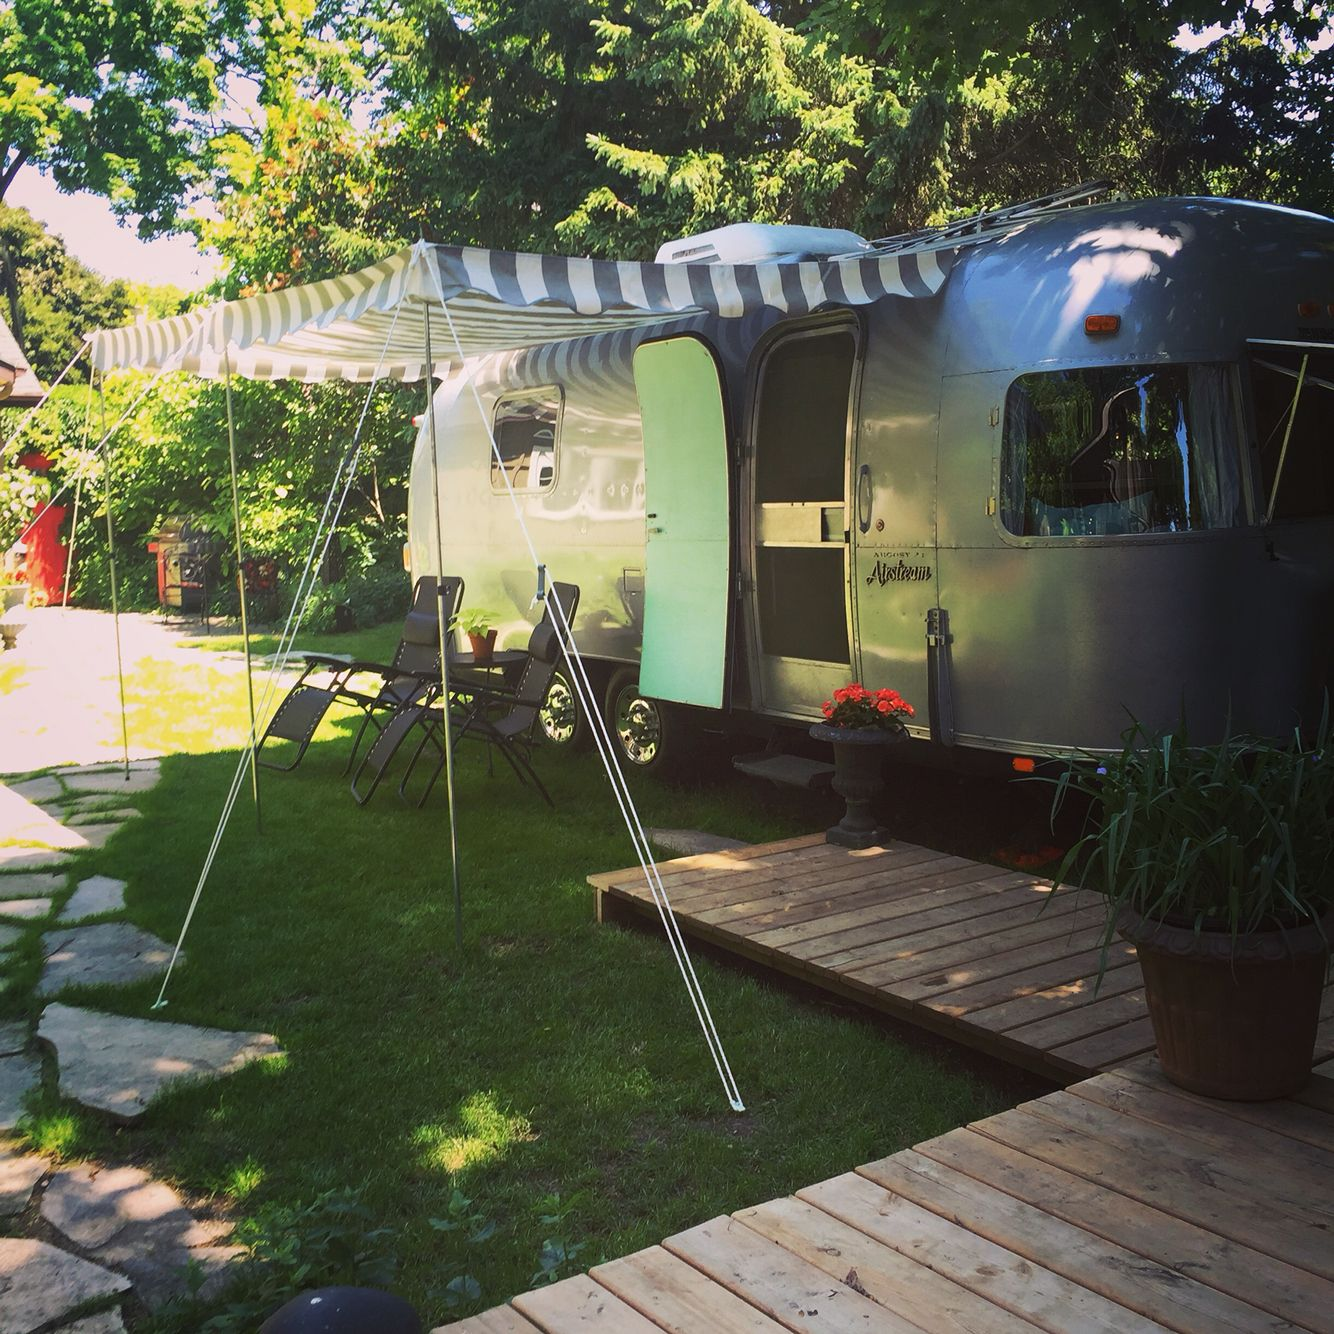 backyard camping with our airstream argosy trying out the new